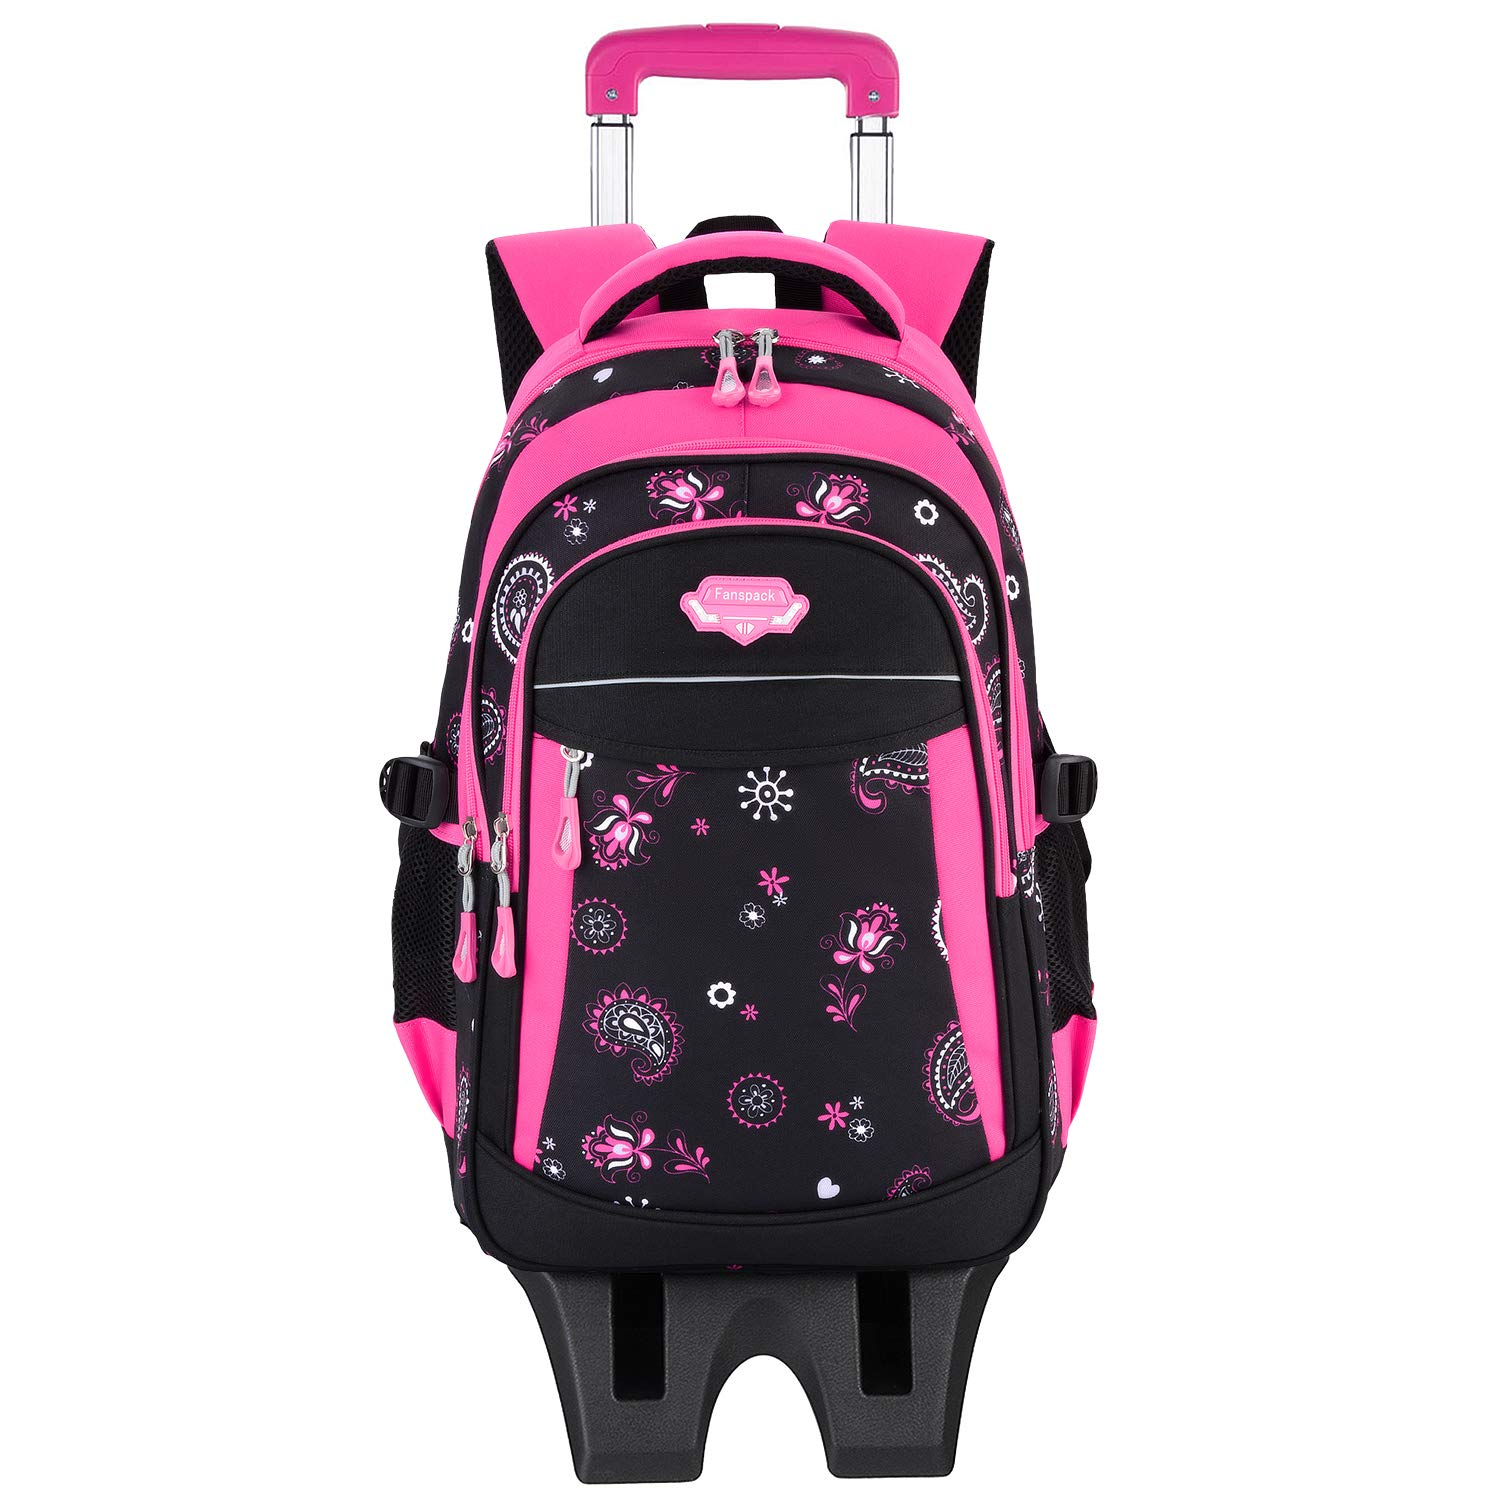 Rolling Bacpack, Fanspack Girls Backpack with 6 Wheels School Bags Rolling Bookbags Kids Wheeled Backpack for School by Fanspack